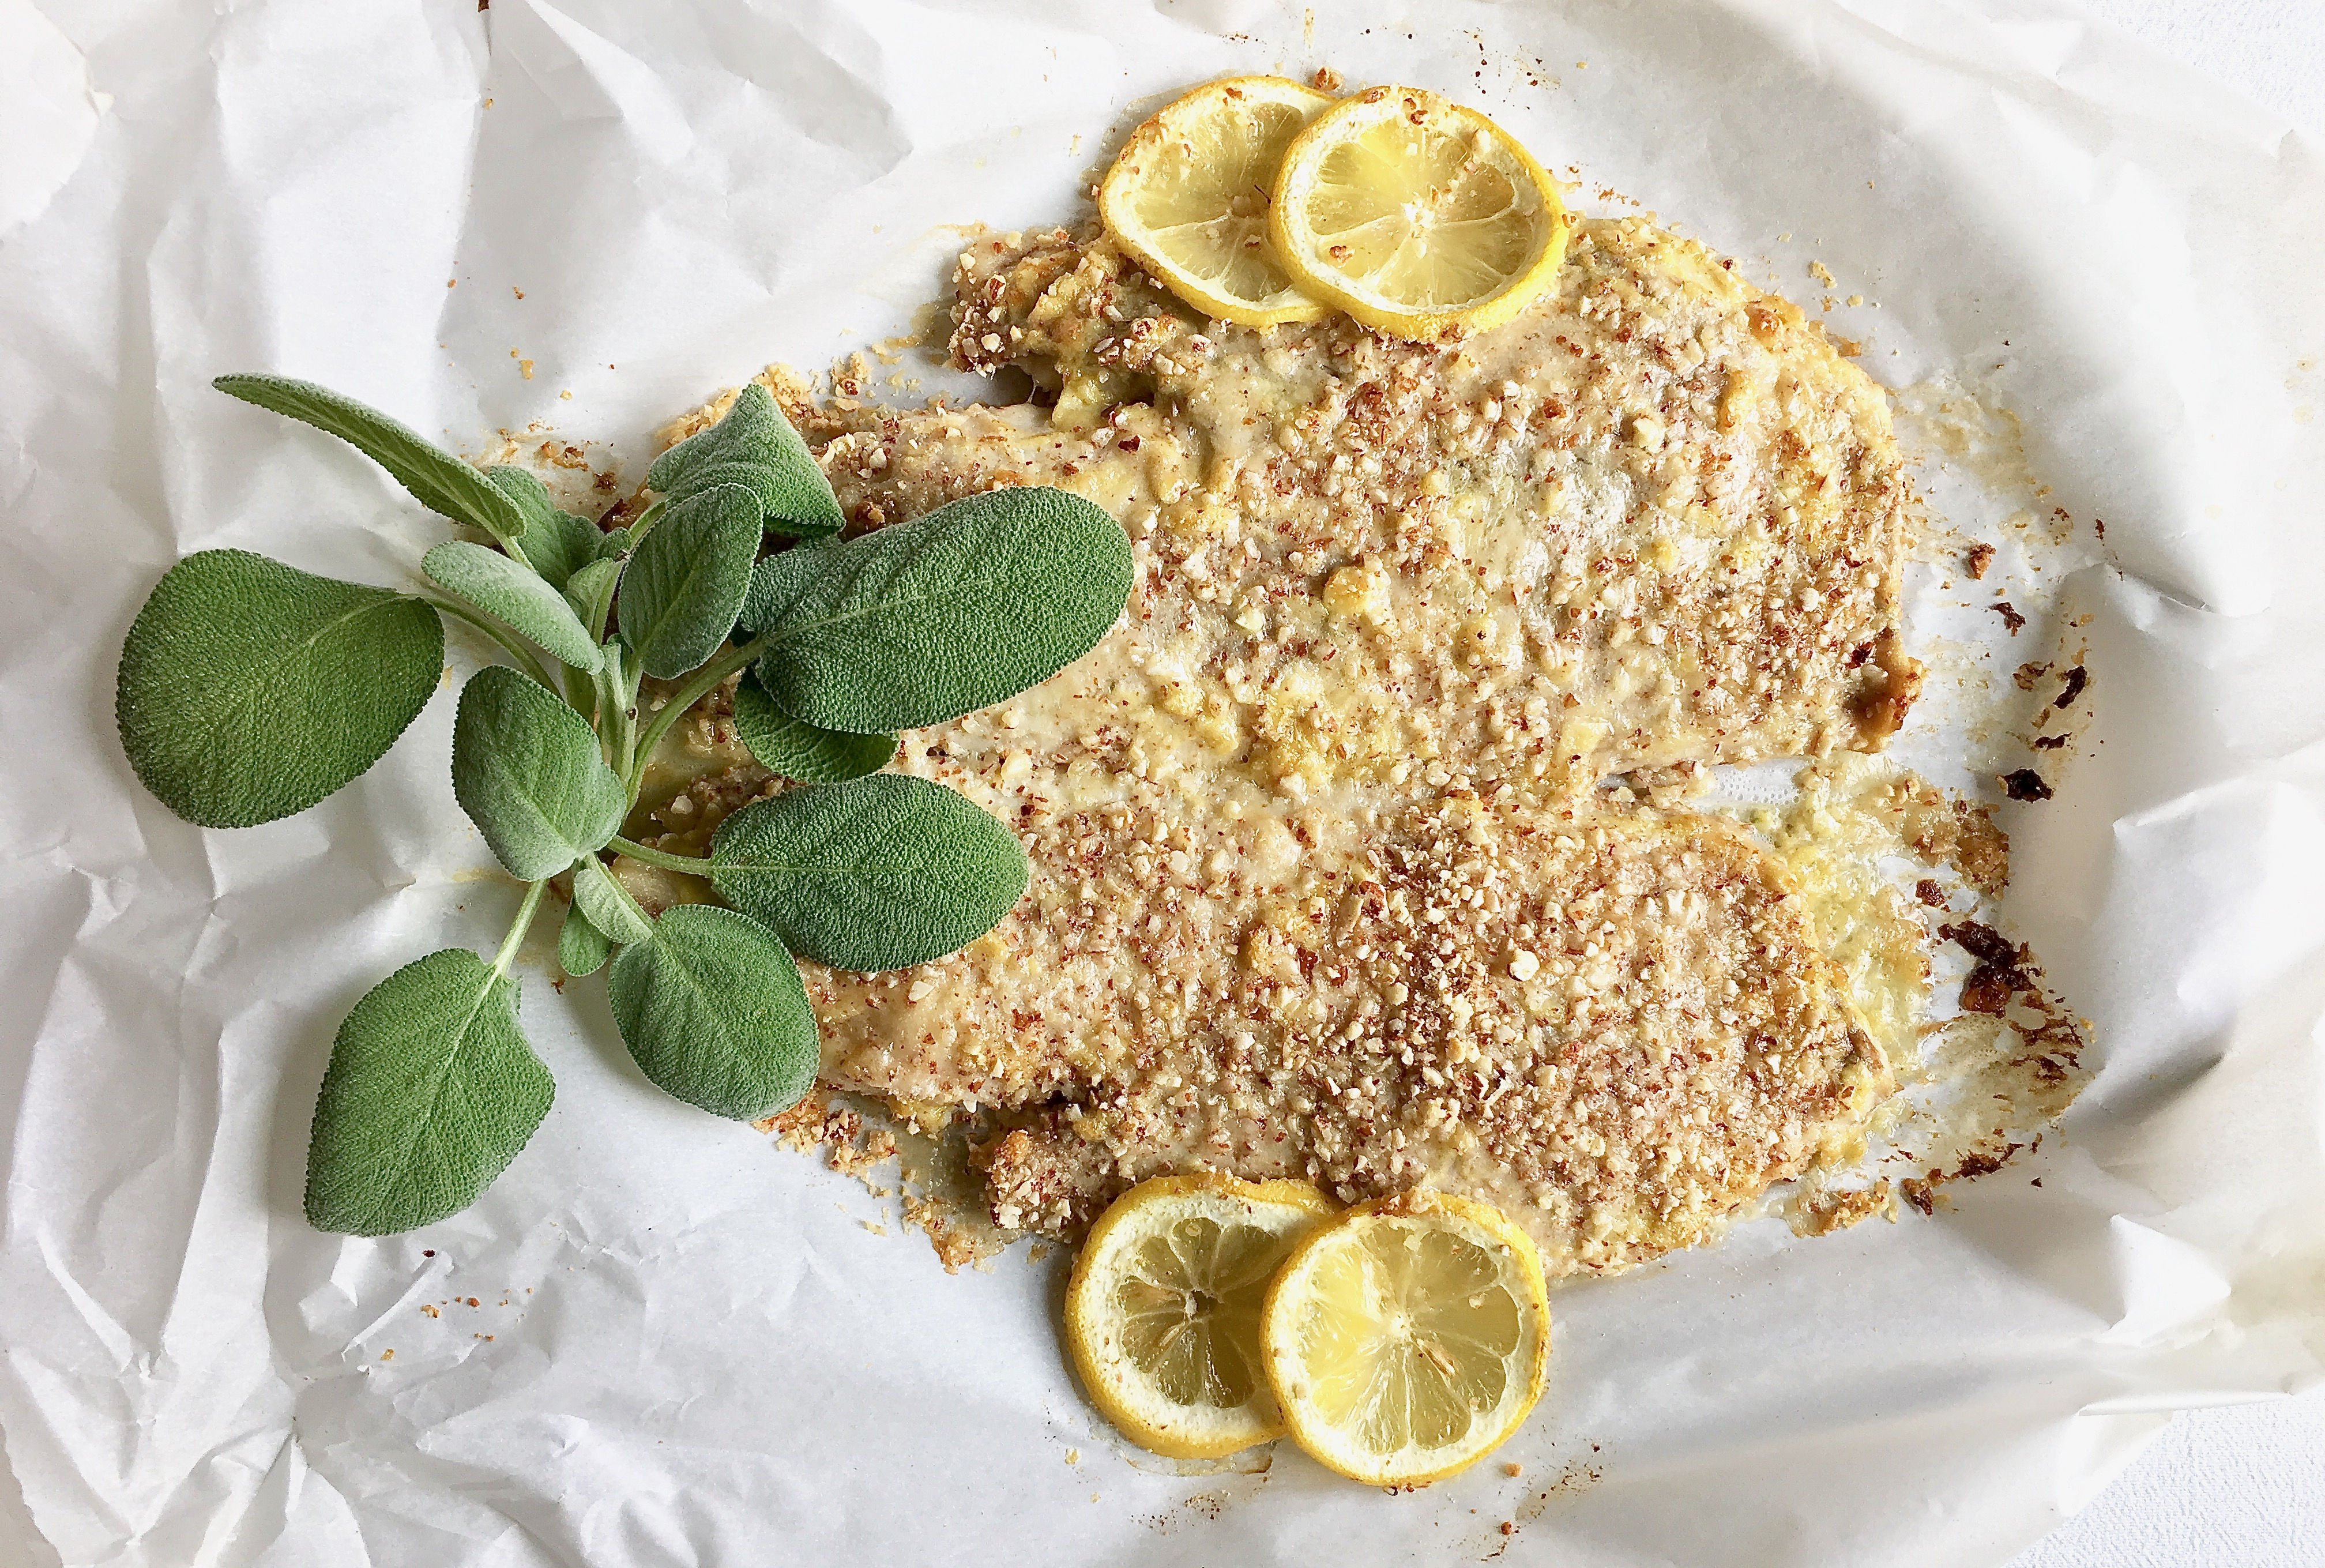 Baked whole fish with almond crust